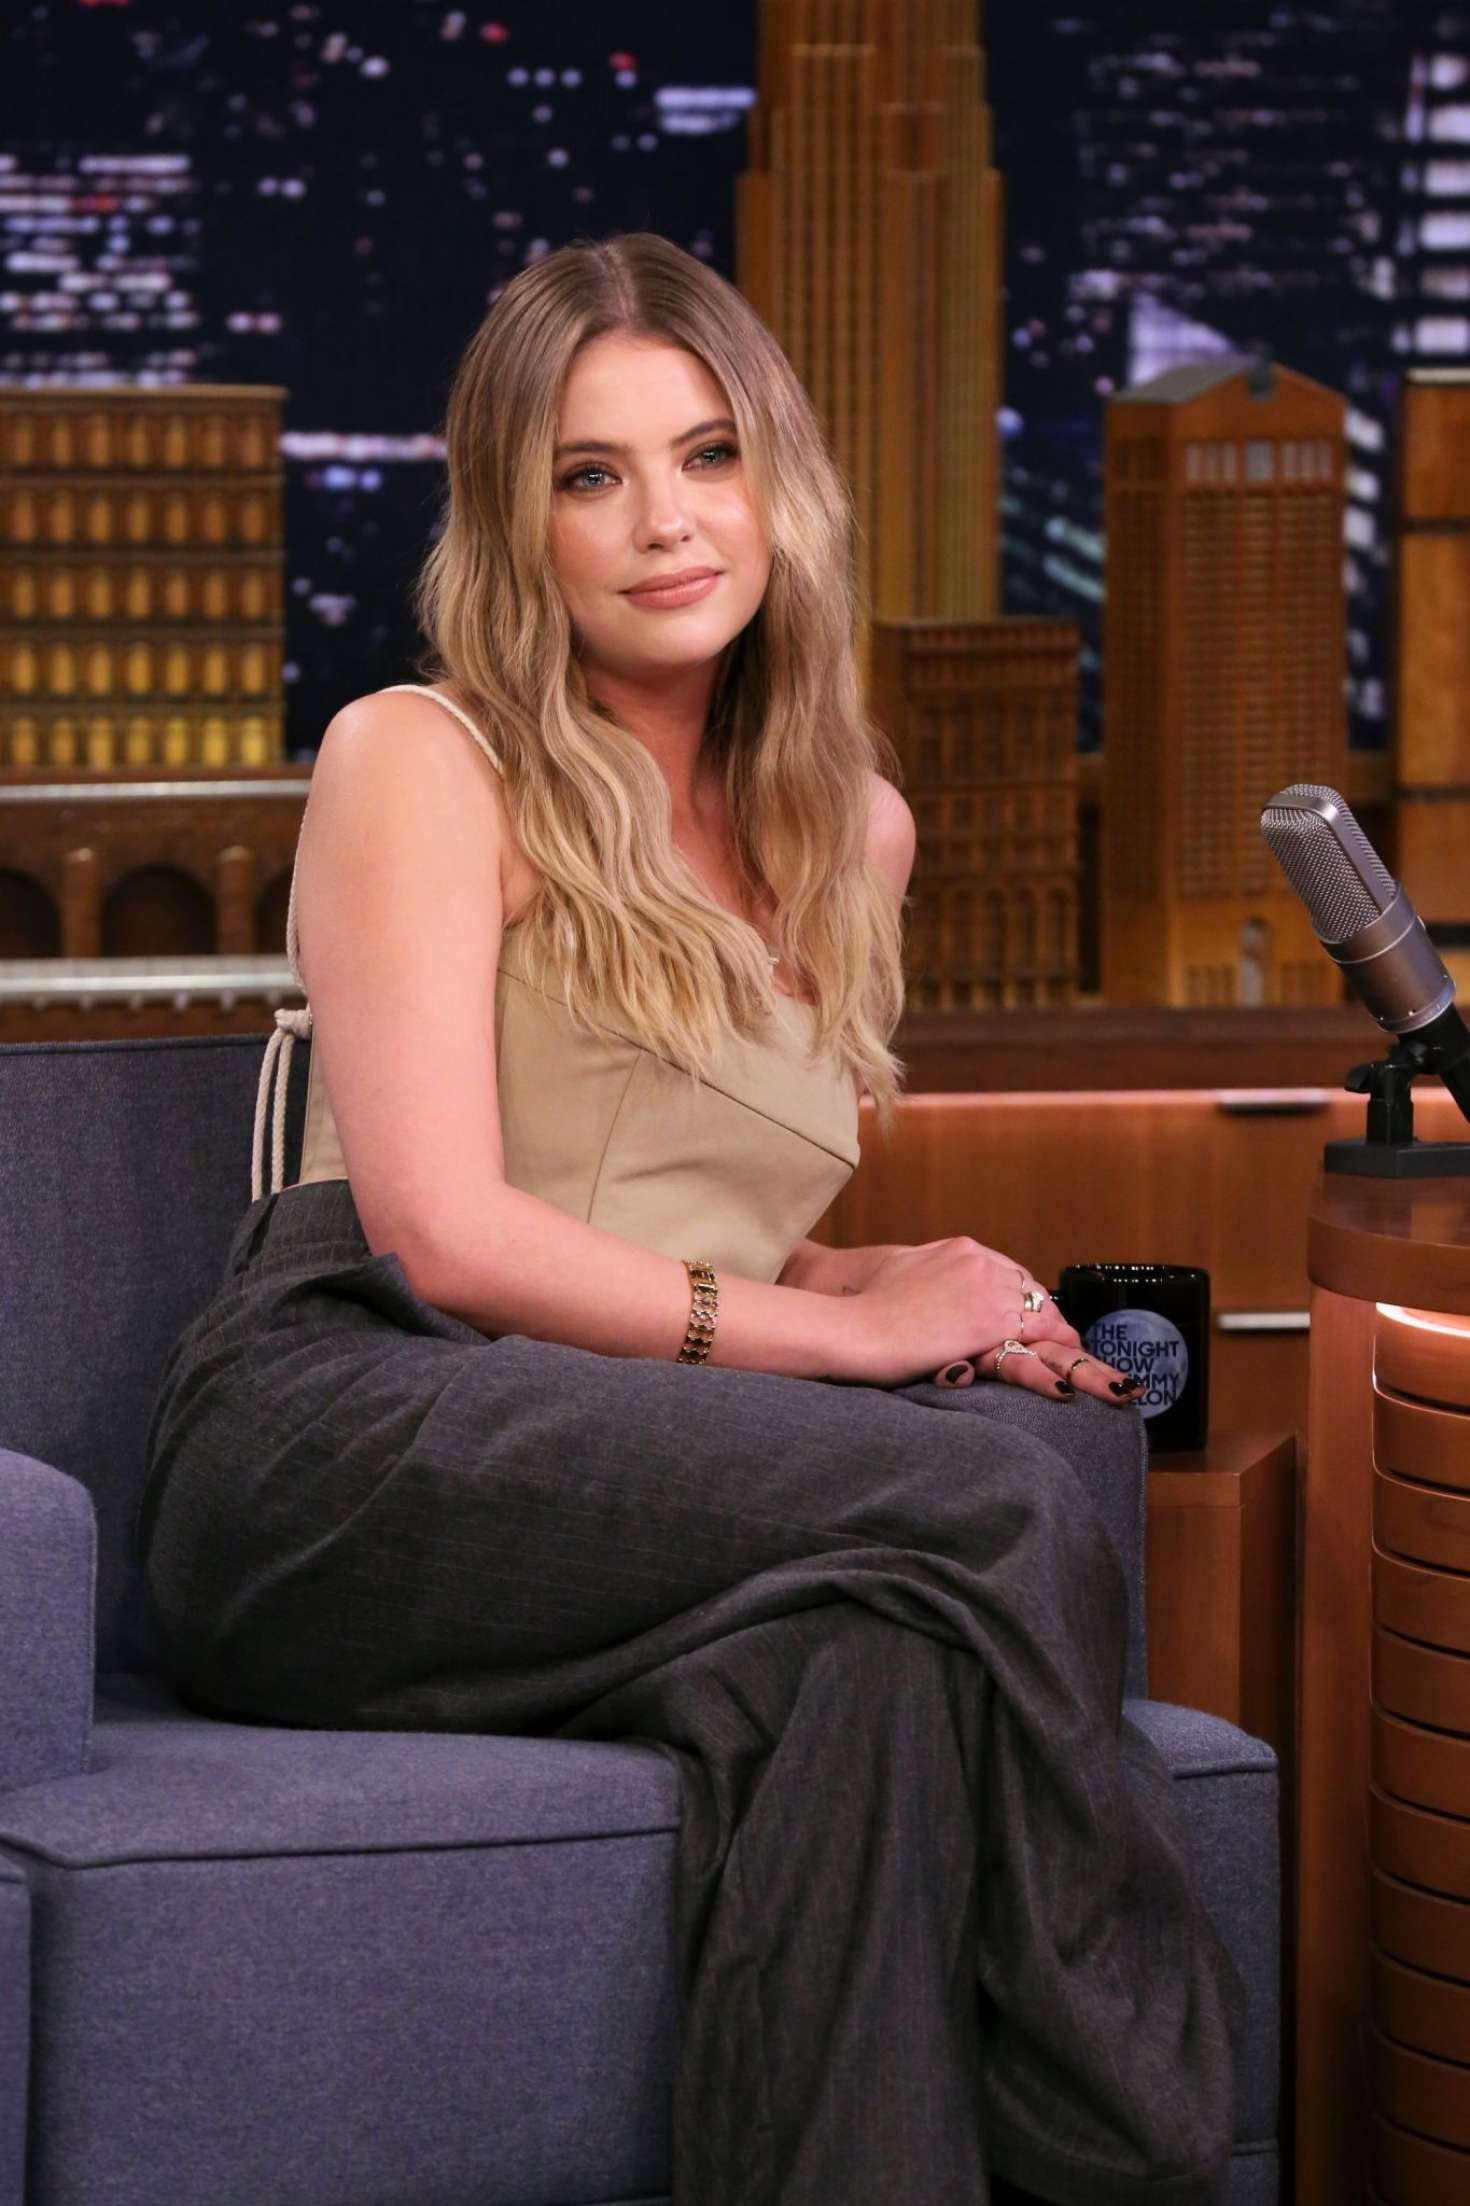 Ashley Benson - On 'The Tonight Show Starring Jimmy Fallon' in New York City